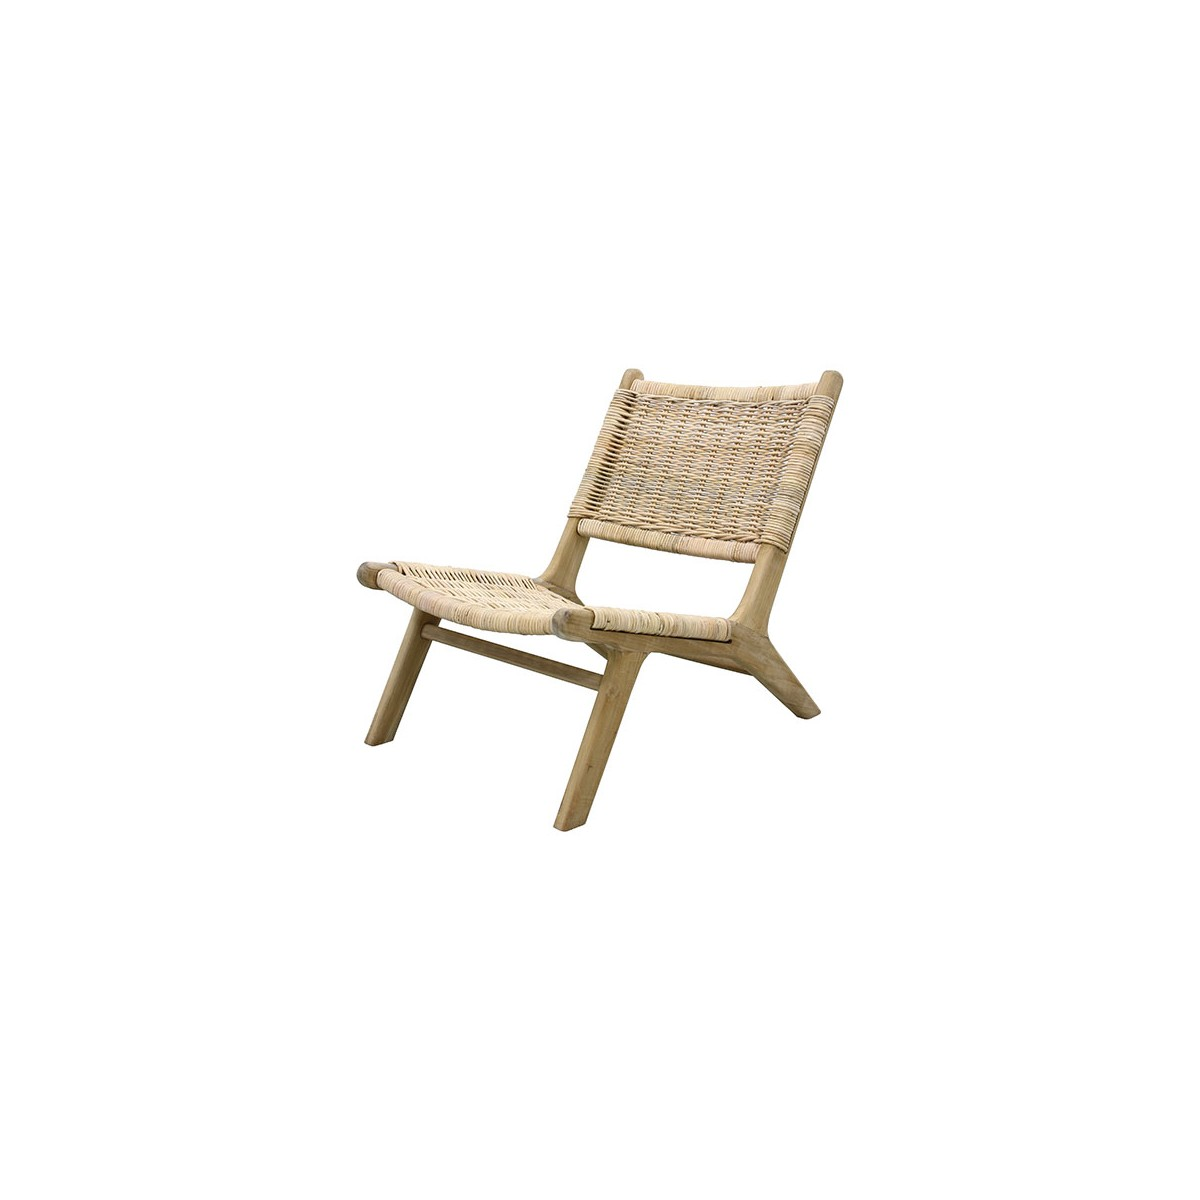 Wicker Lounge Chair Hk Living